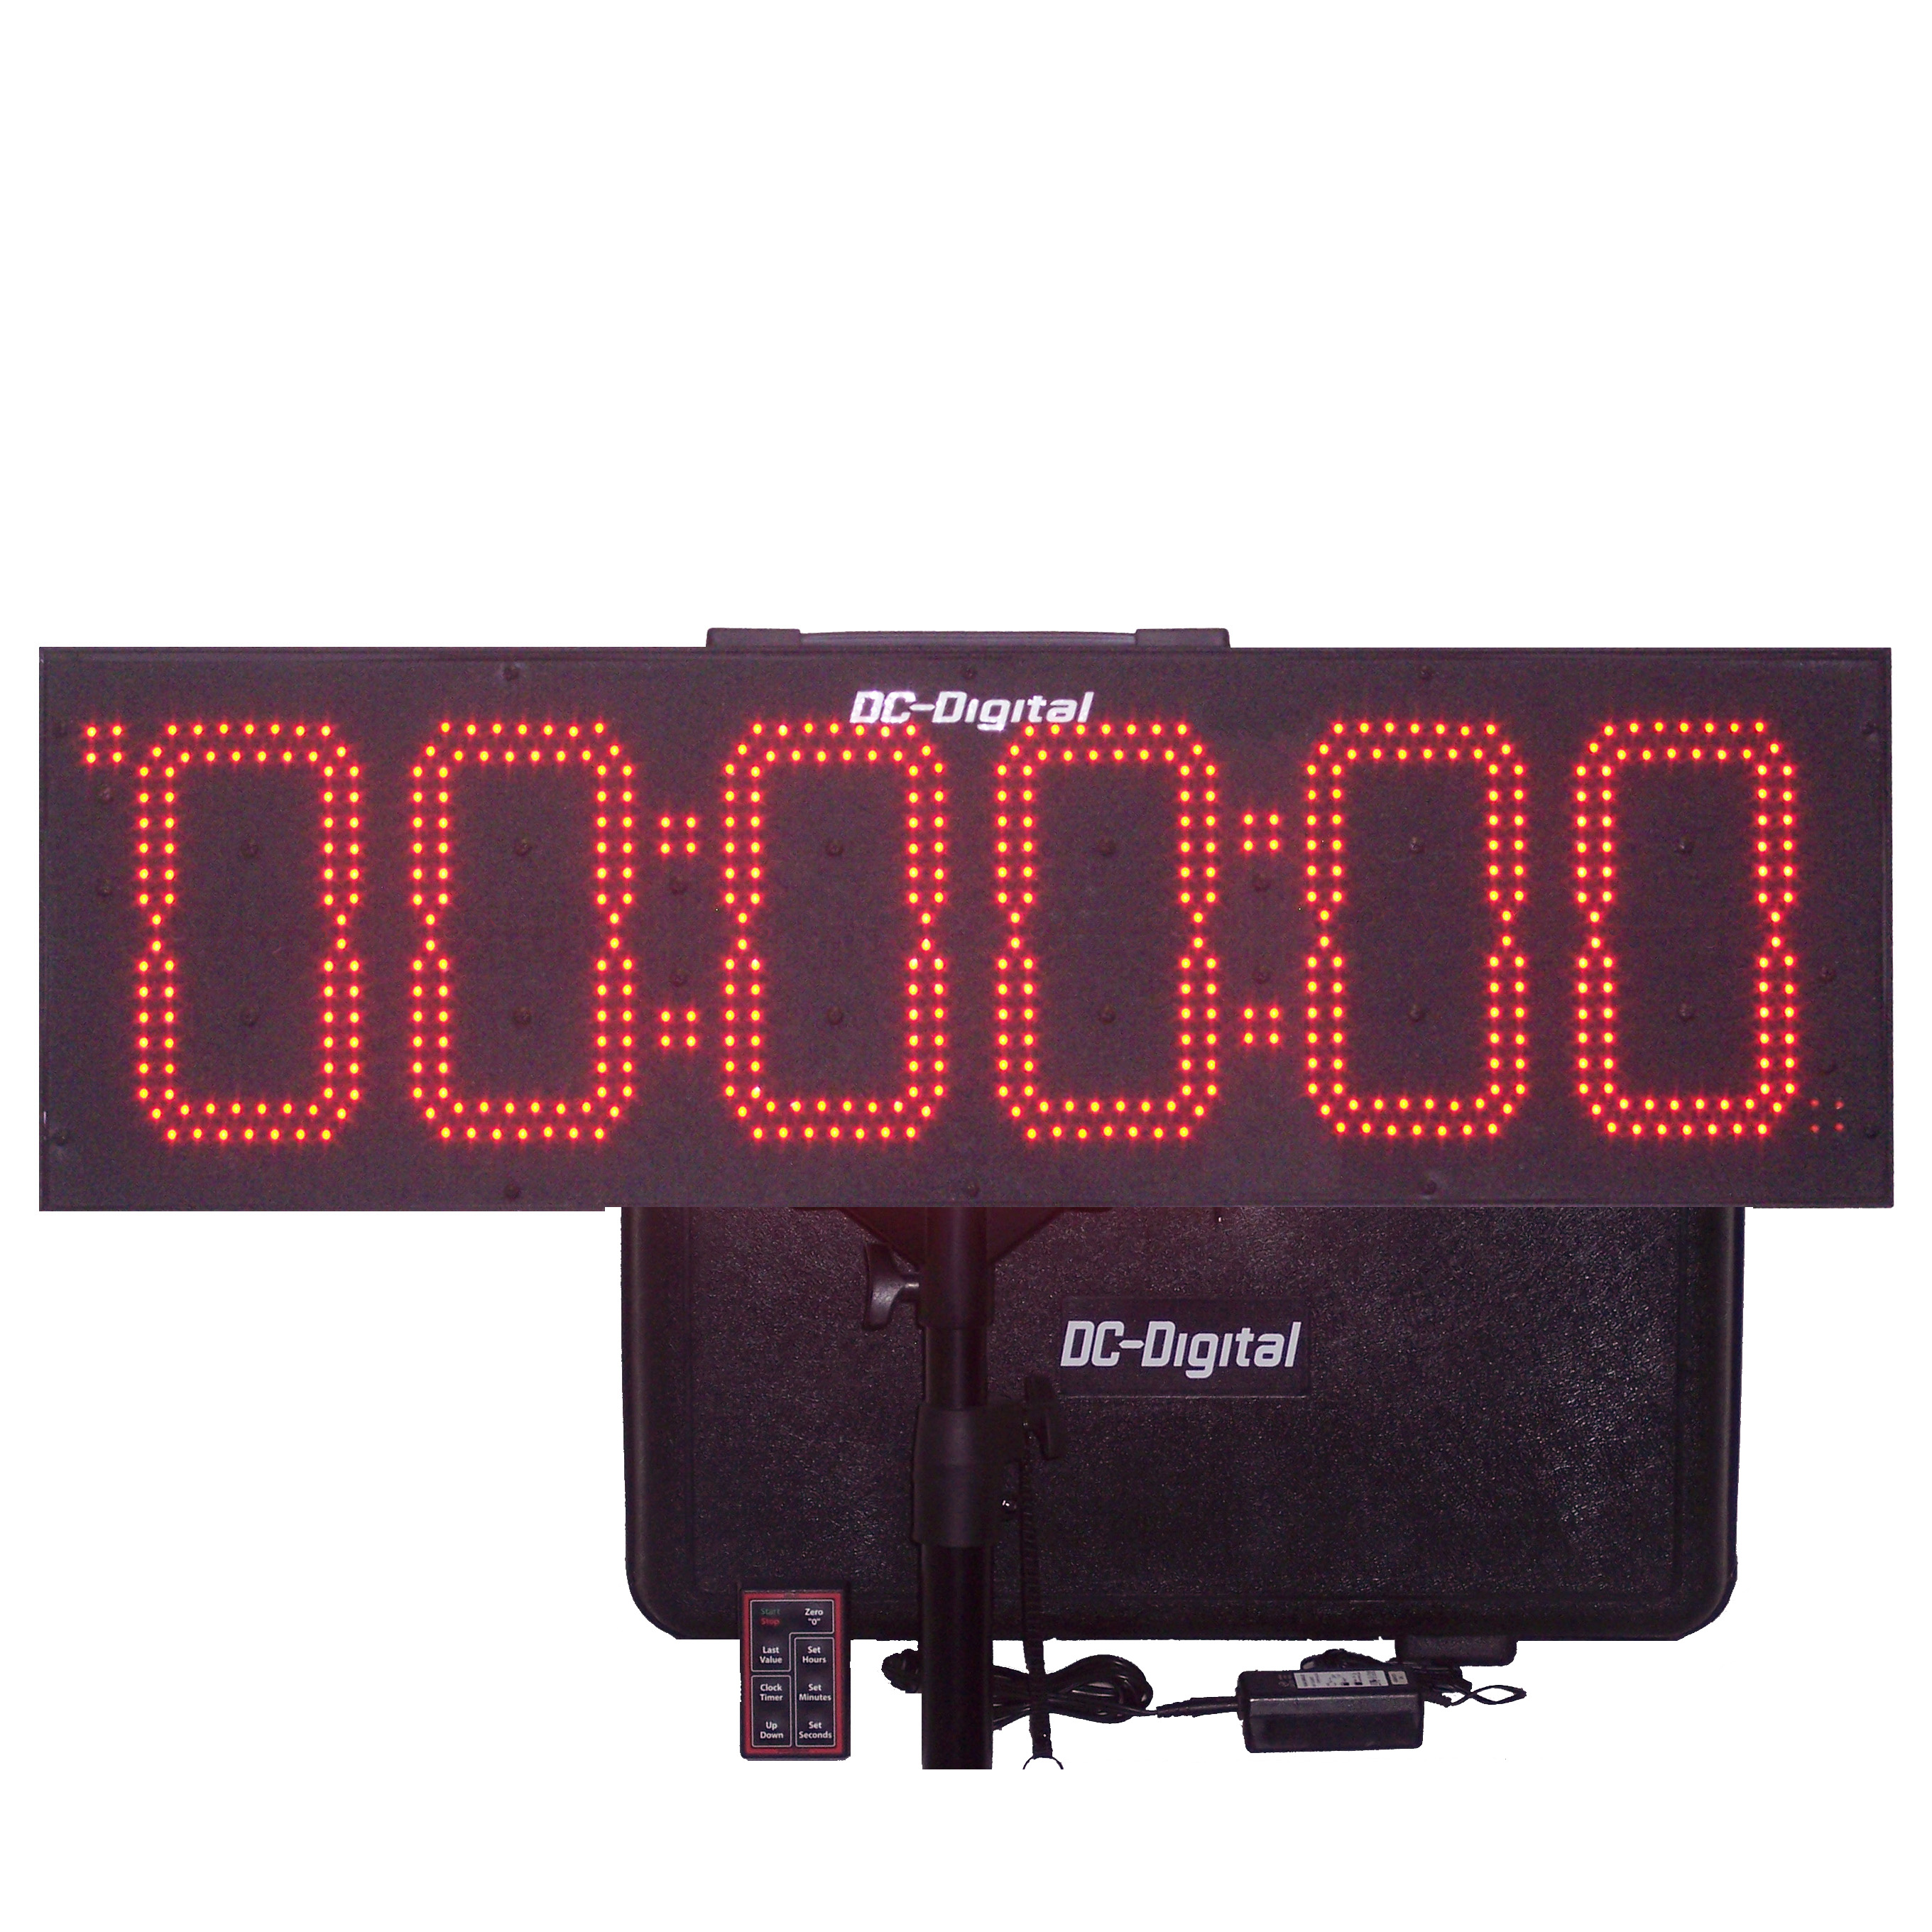 Portable Battery operated, Wireless controlled Multi-Function Count Up Clock-Timer, Countdown Clock-Timer, Time of Day clock, track timer-clock with tripod and carrying case.